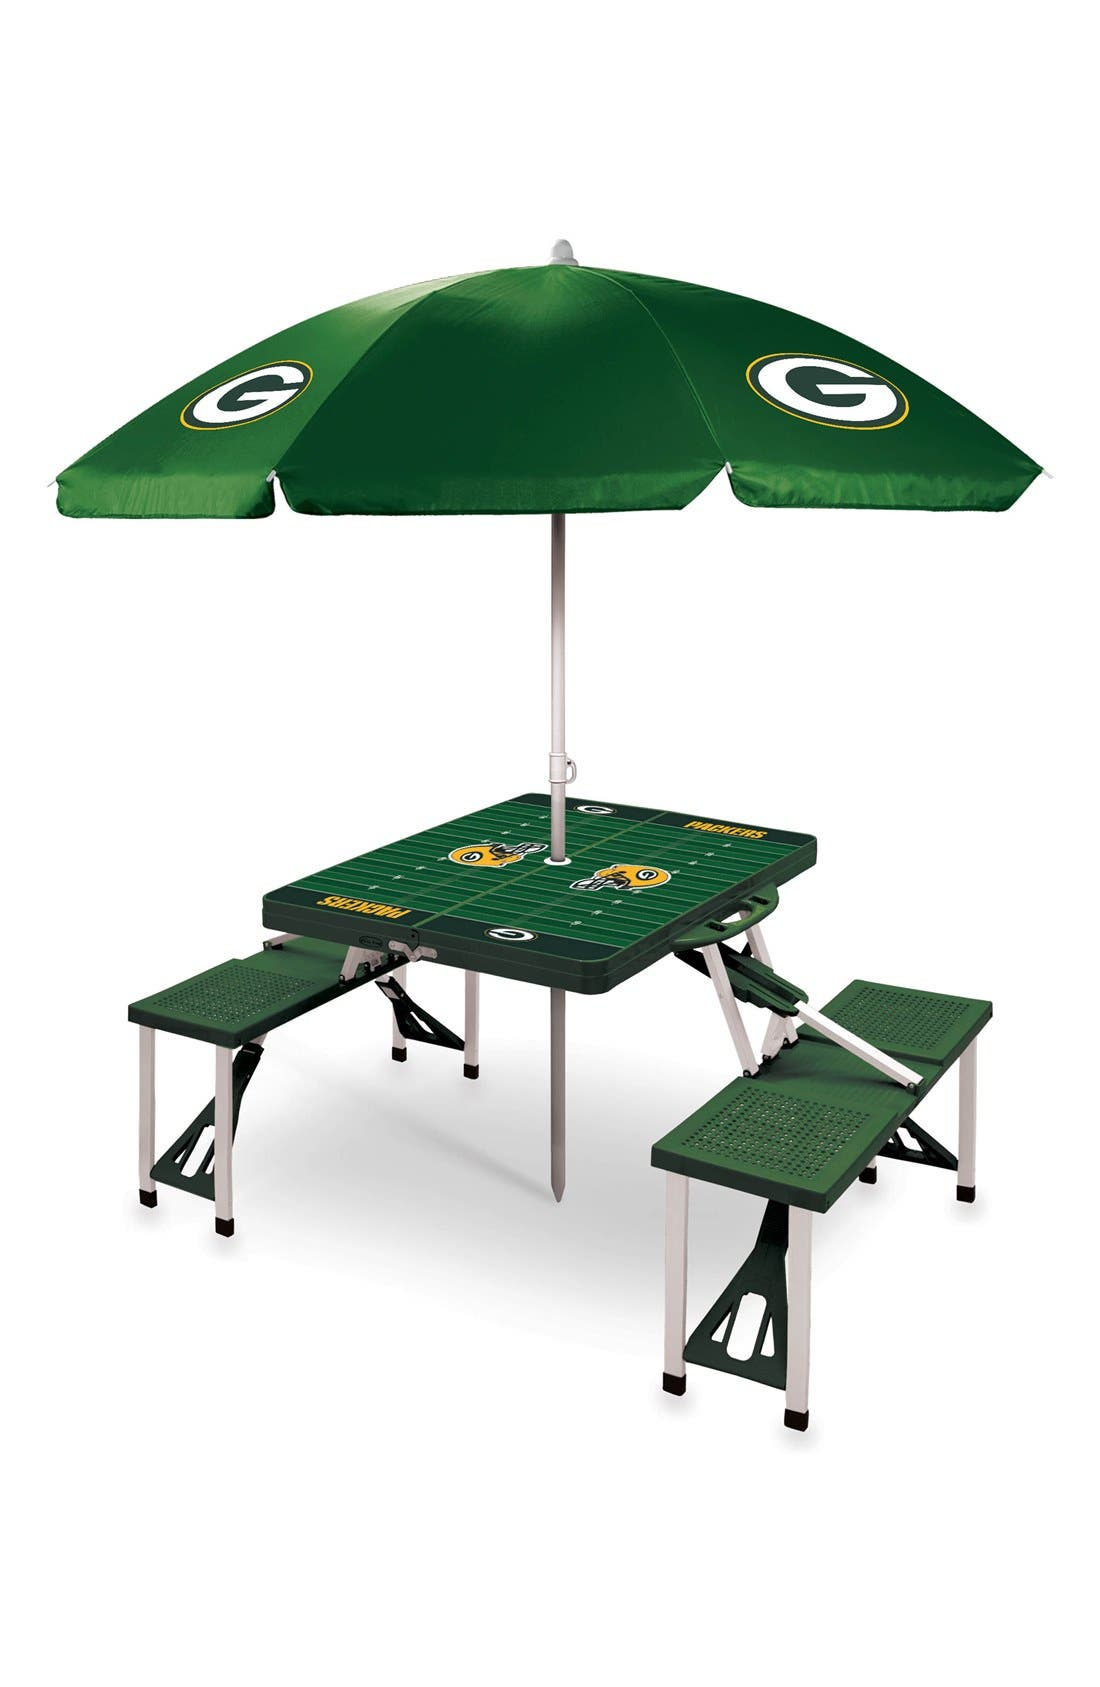 Team Football Field Design Portable Picnic Table with Umbrella,                             Main thumbnail 1, color,                             300